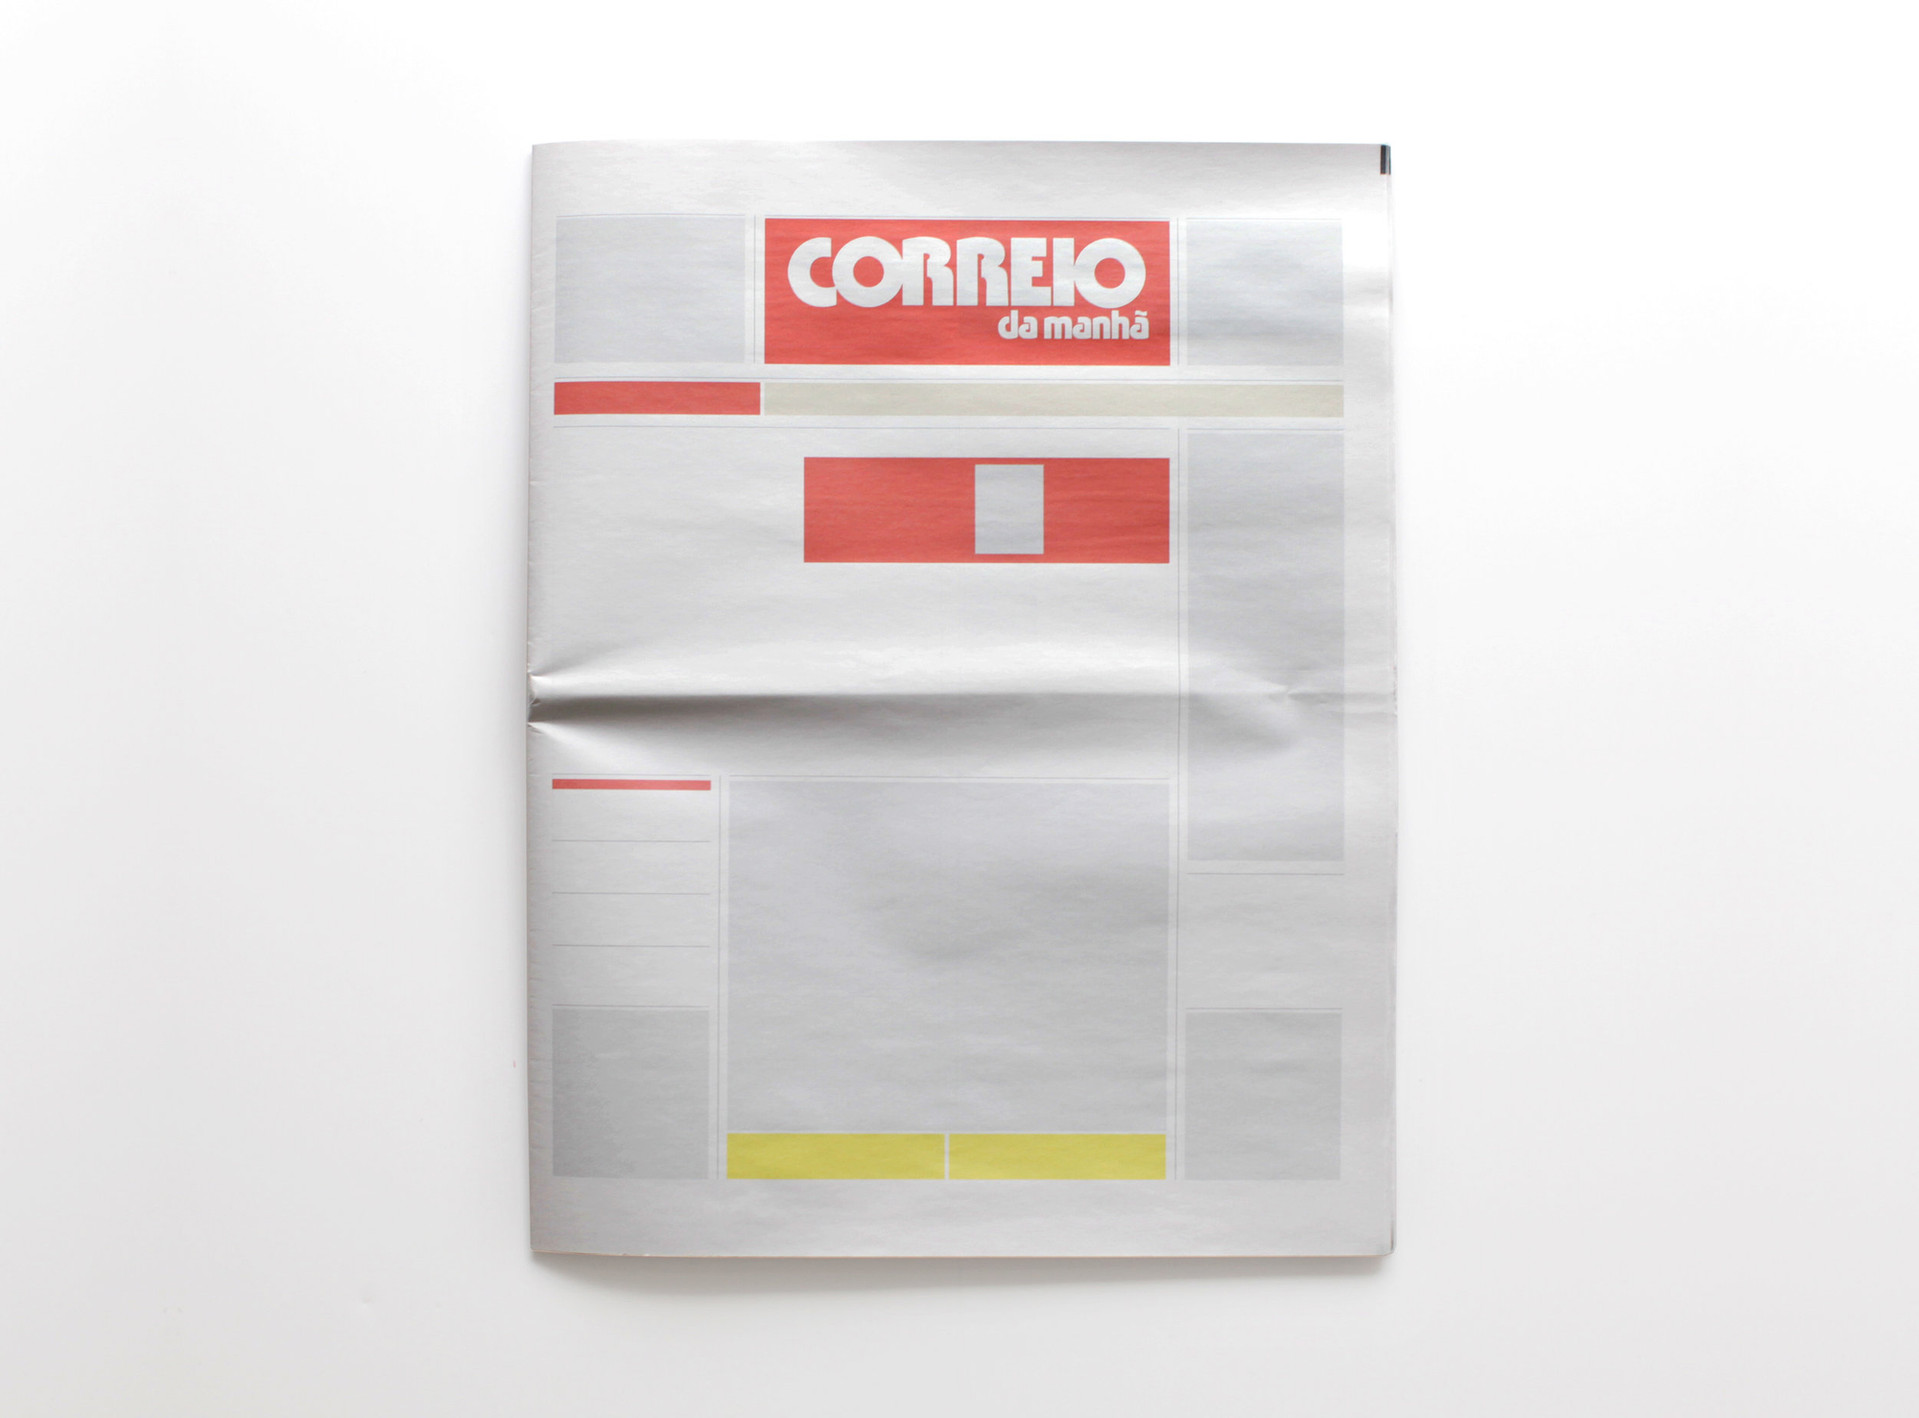 NOTHING IN CORREIO DA MANHÃ: Newspapers from around the world with nothing in them.